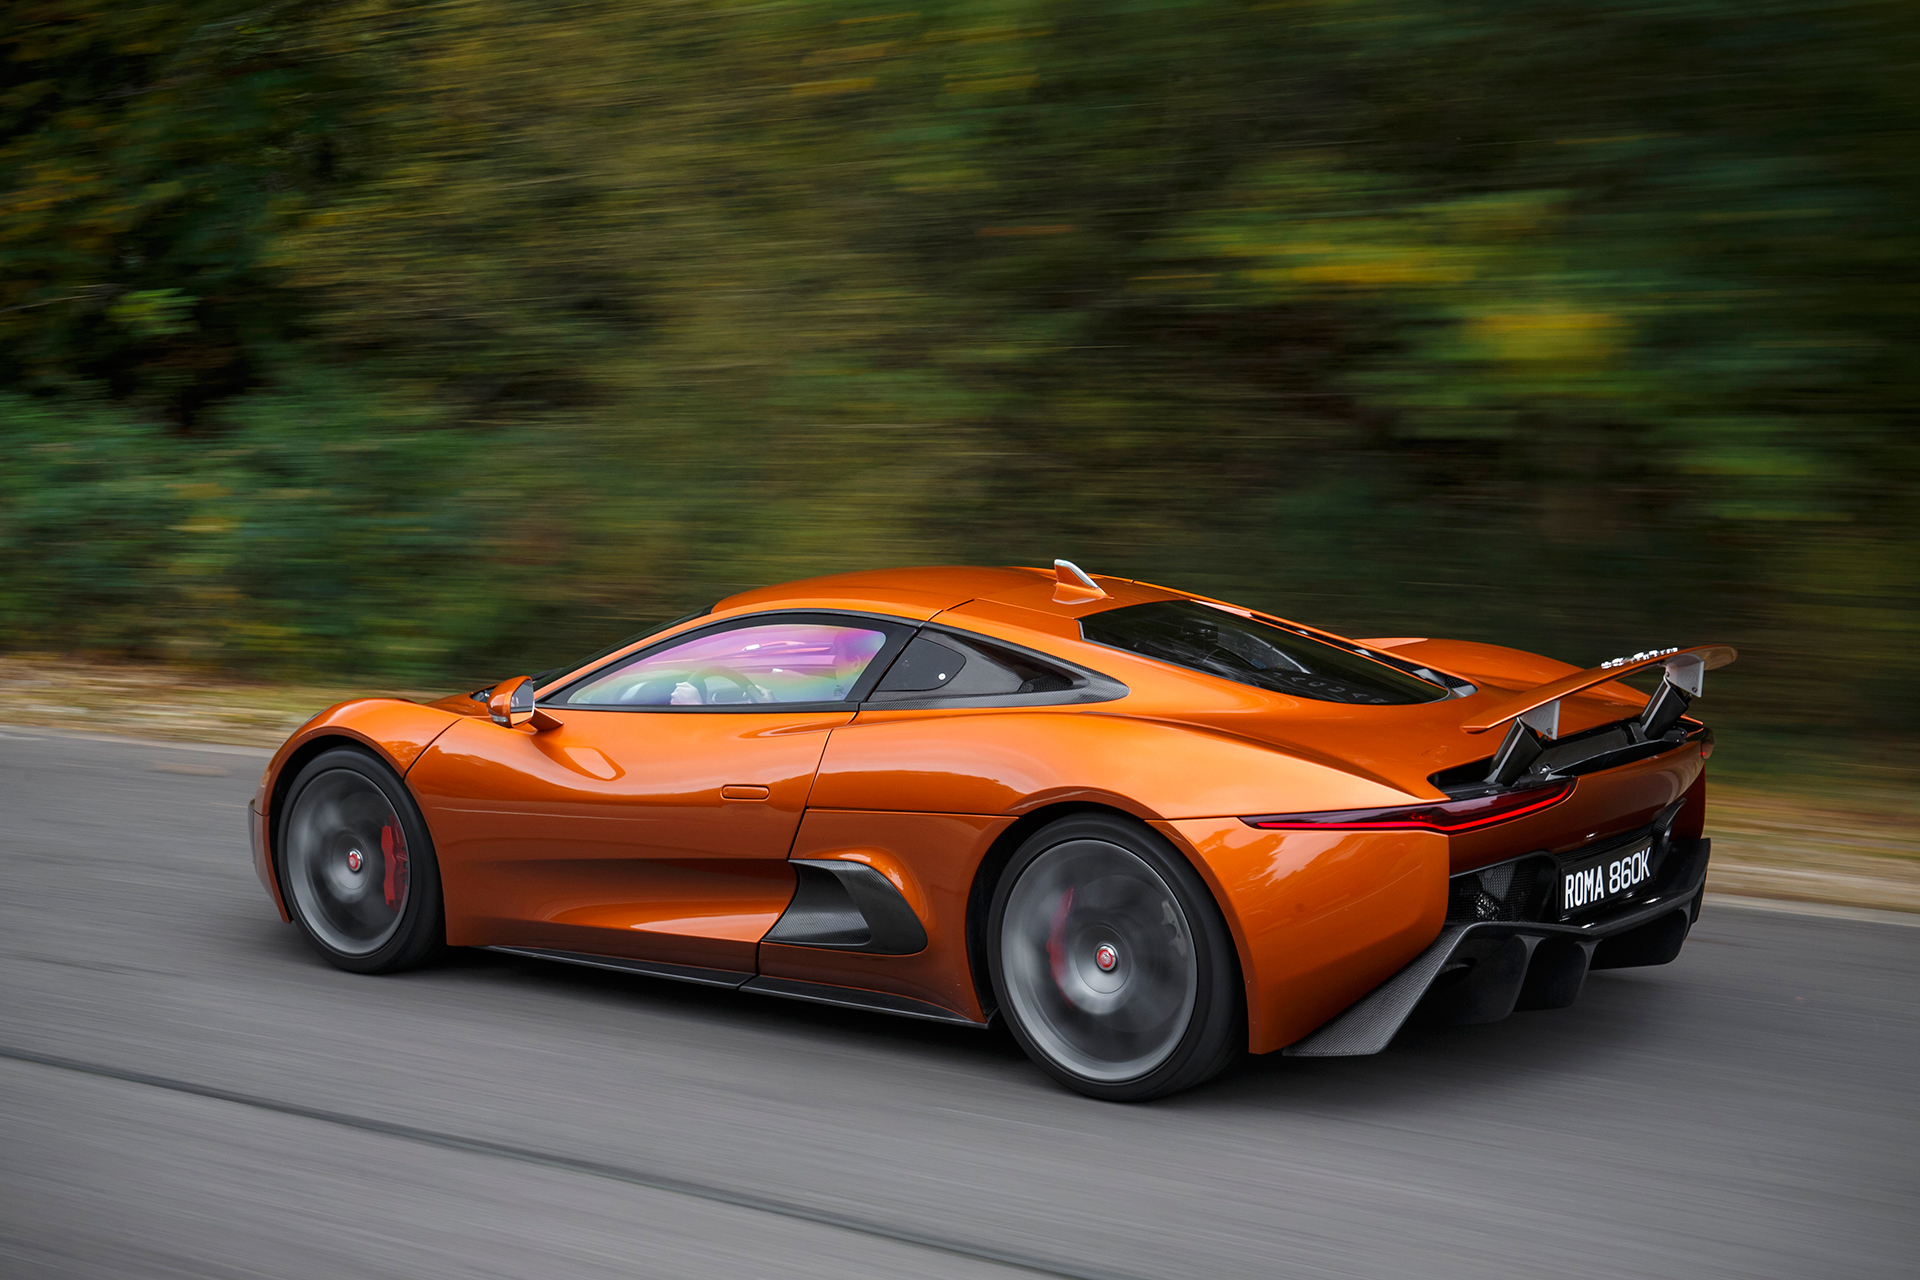 Jaguar C-X75 - Spectre - 2015 - profil arrière / rear side-face - route / road